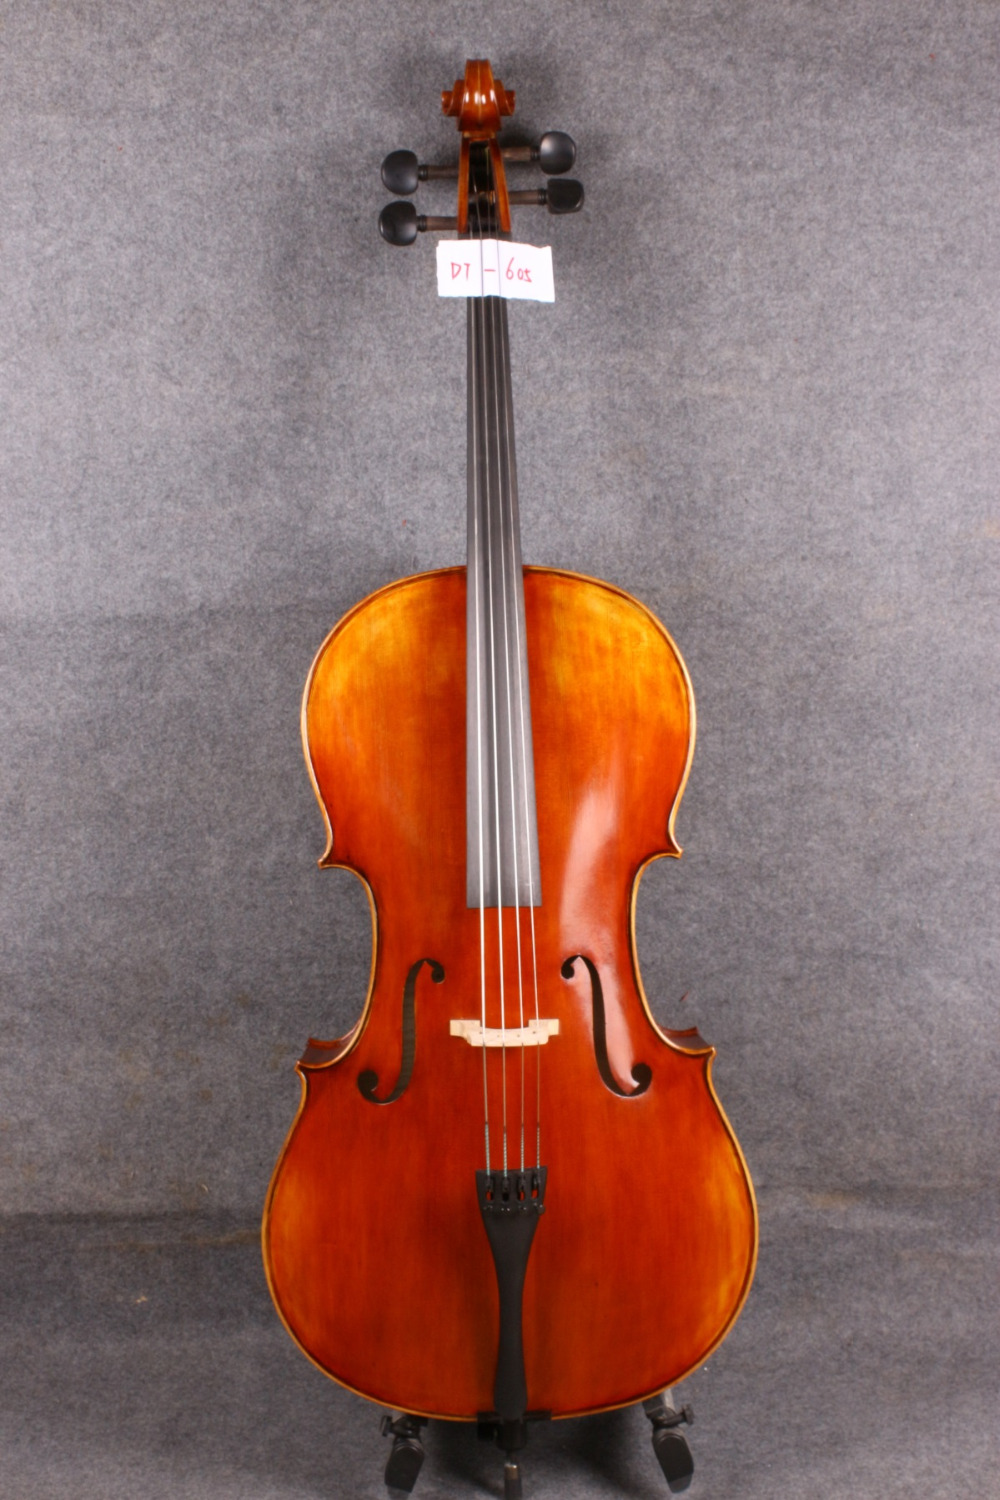 New 4 string cello Spruce top Back Ebonywood Parts 4/4 Powerful Sound 605# new 4 4 electric cello powerful sound ebony parts end pin tailpiece peg 1468